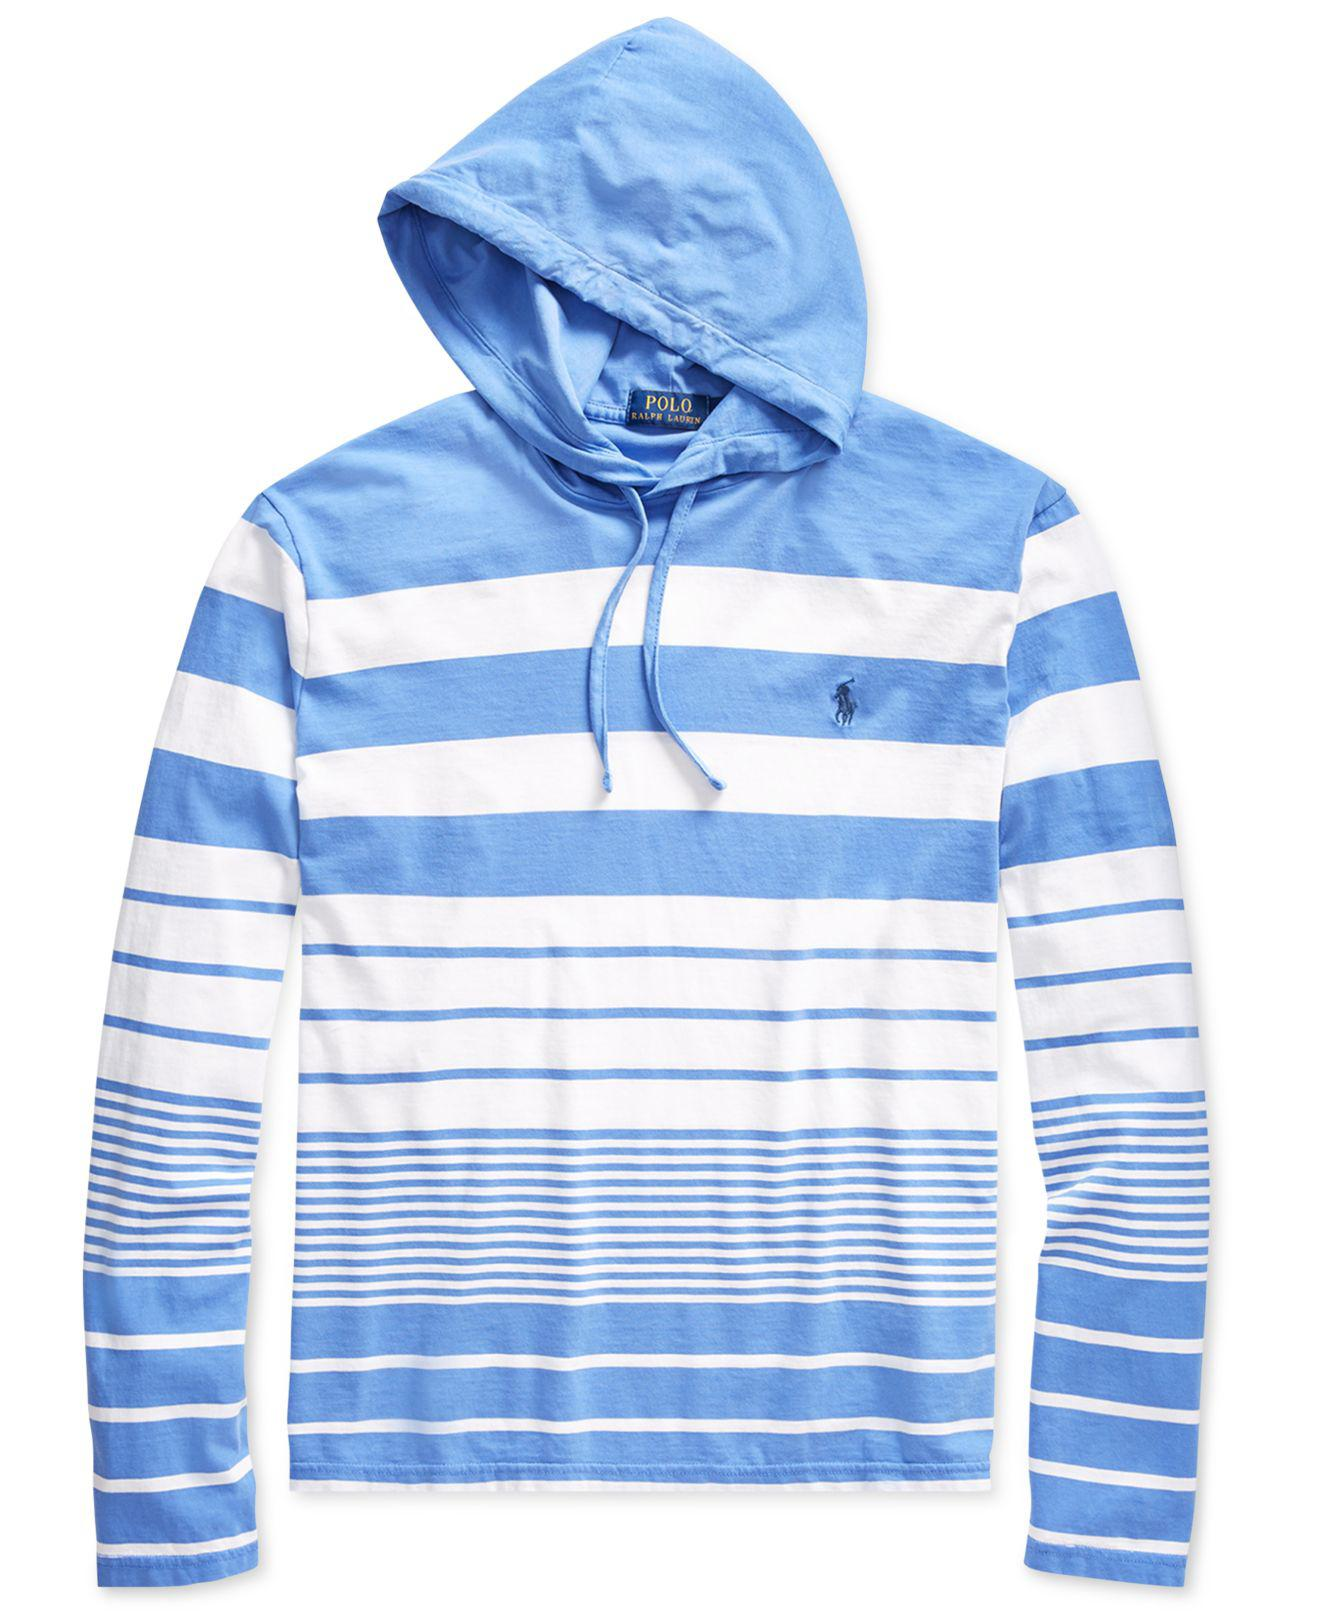 2ab31cee2 ... sweatshirt a1054 77fc7 low cost lyst polo ralph lauren striped hooded t  shirt in blue for men e7d46 62224 ...